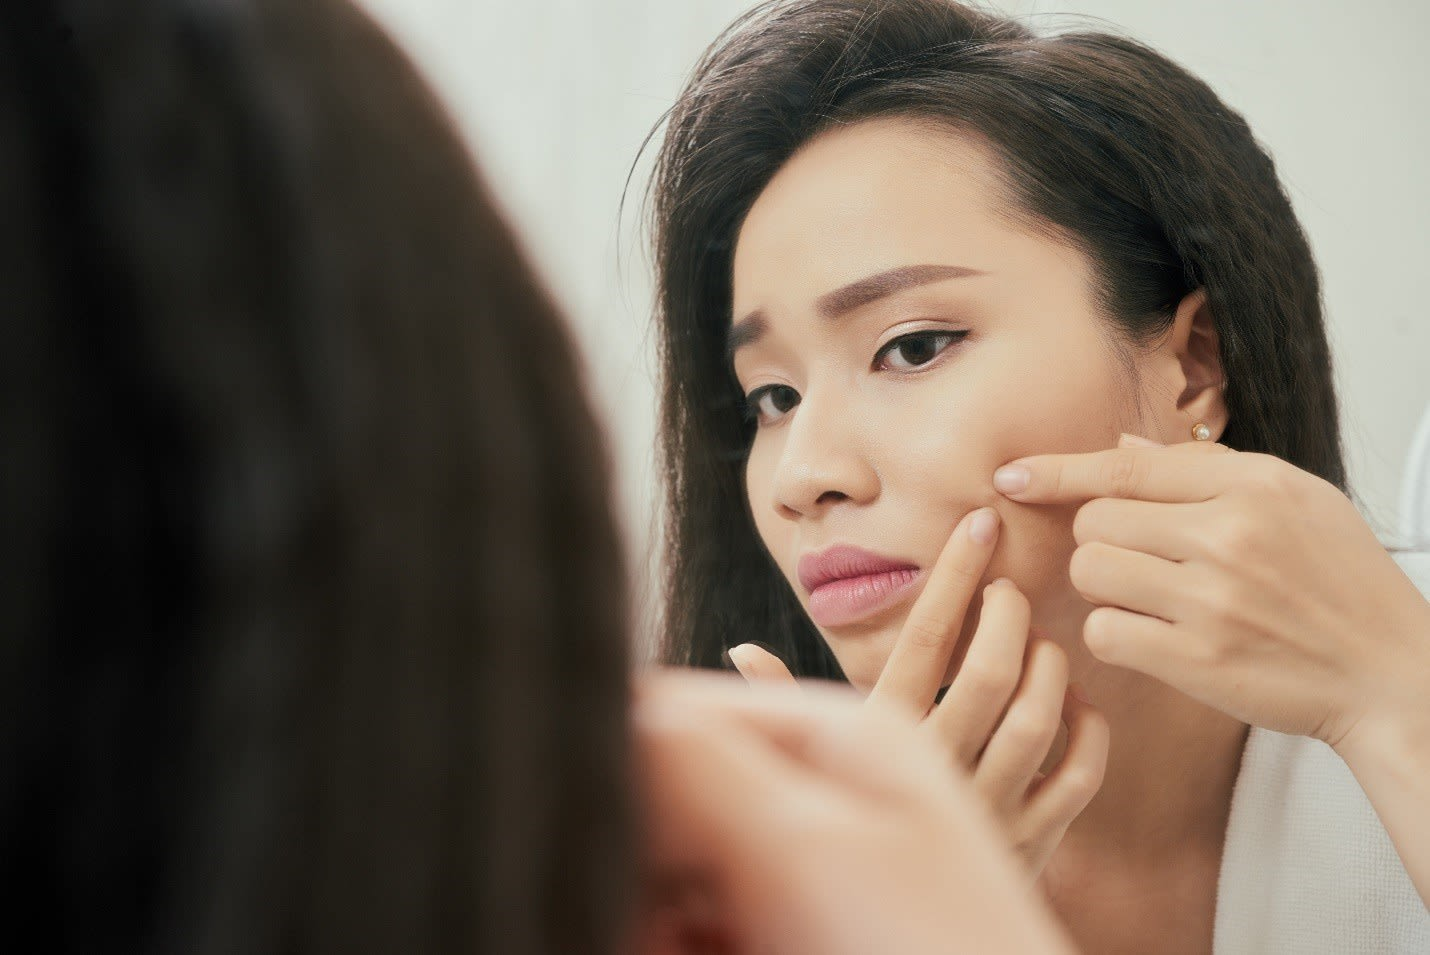 How To Prevent Pimples: Tips To Eliminate Acne